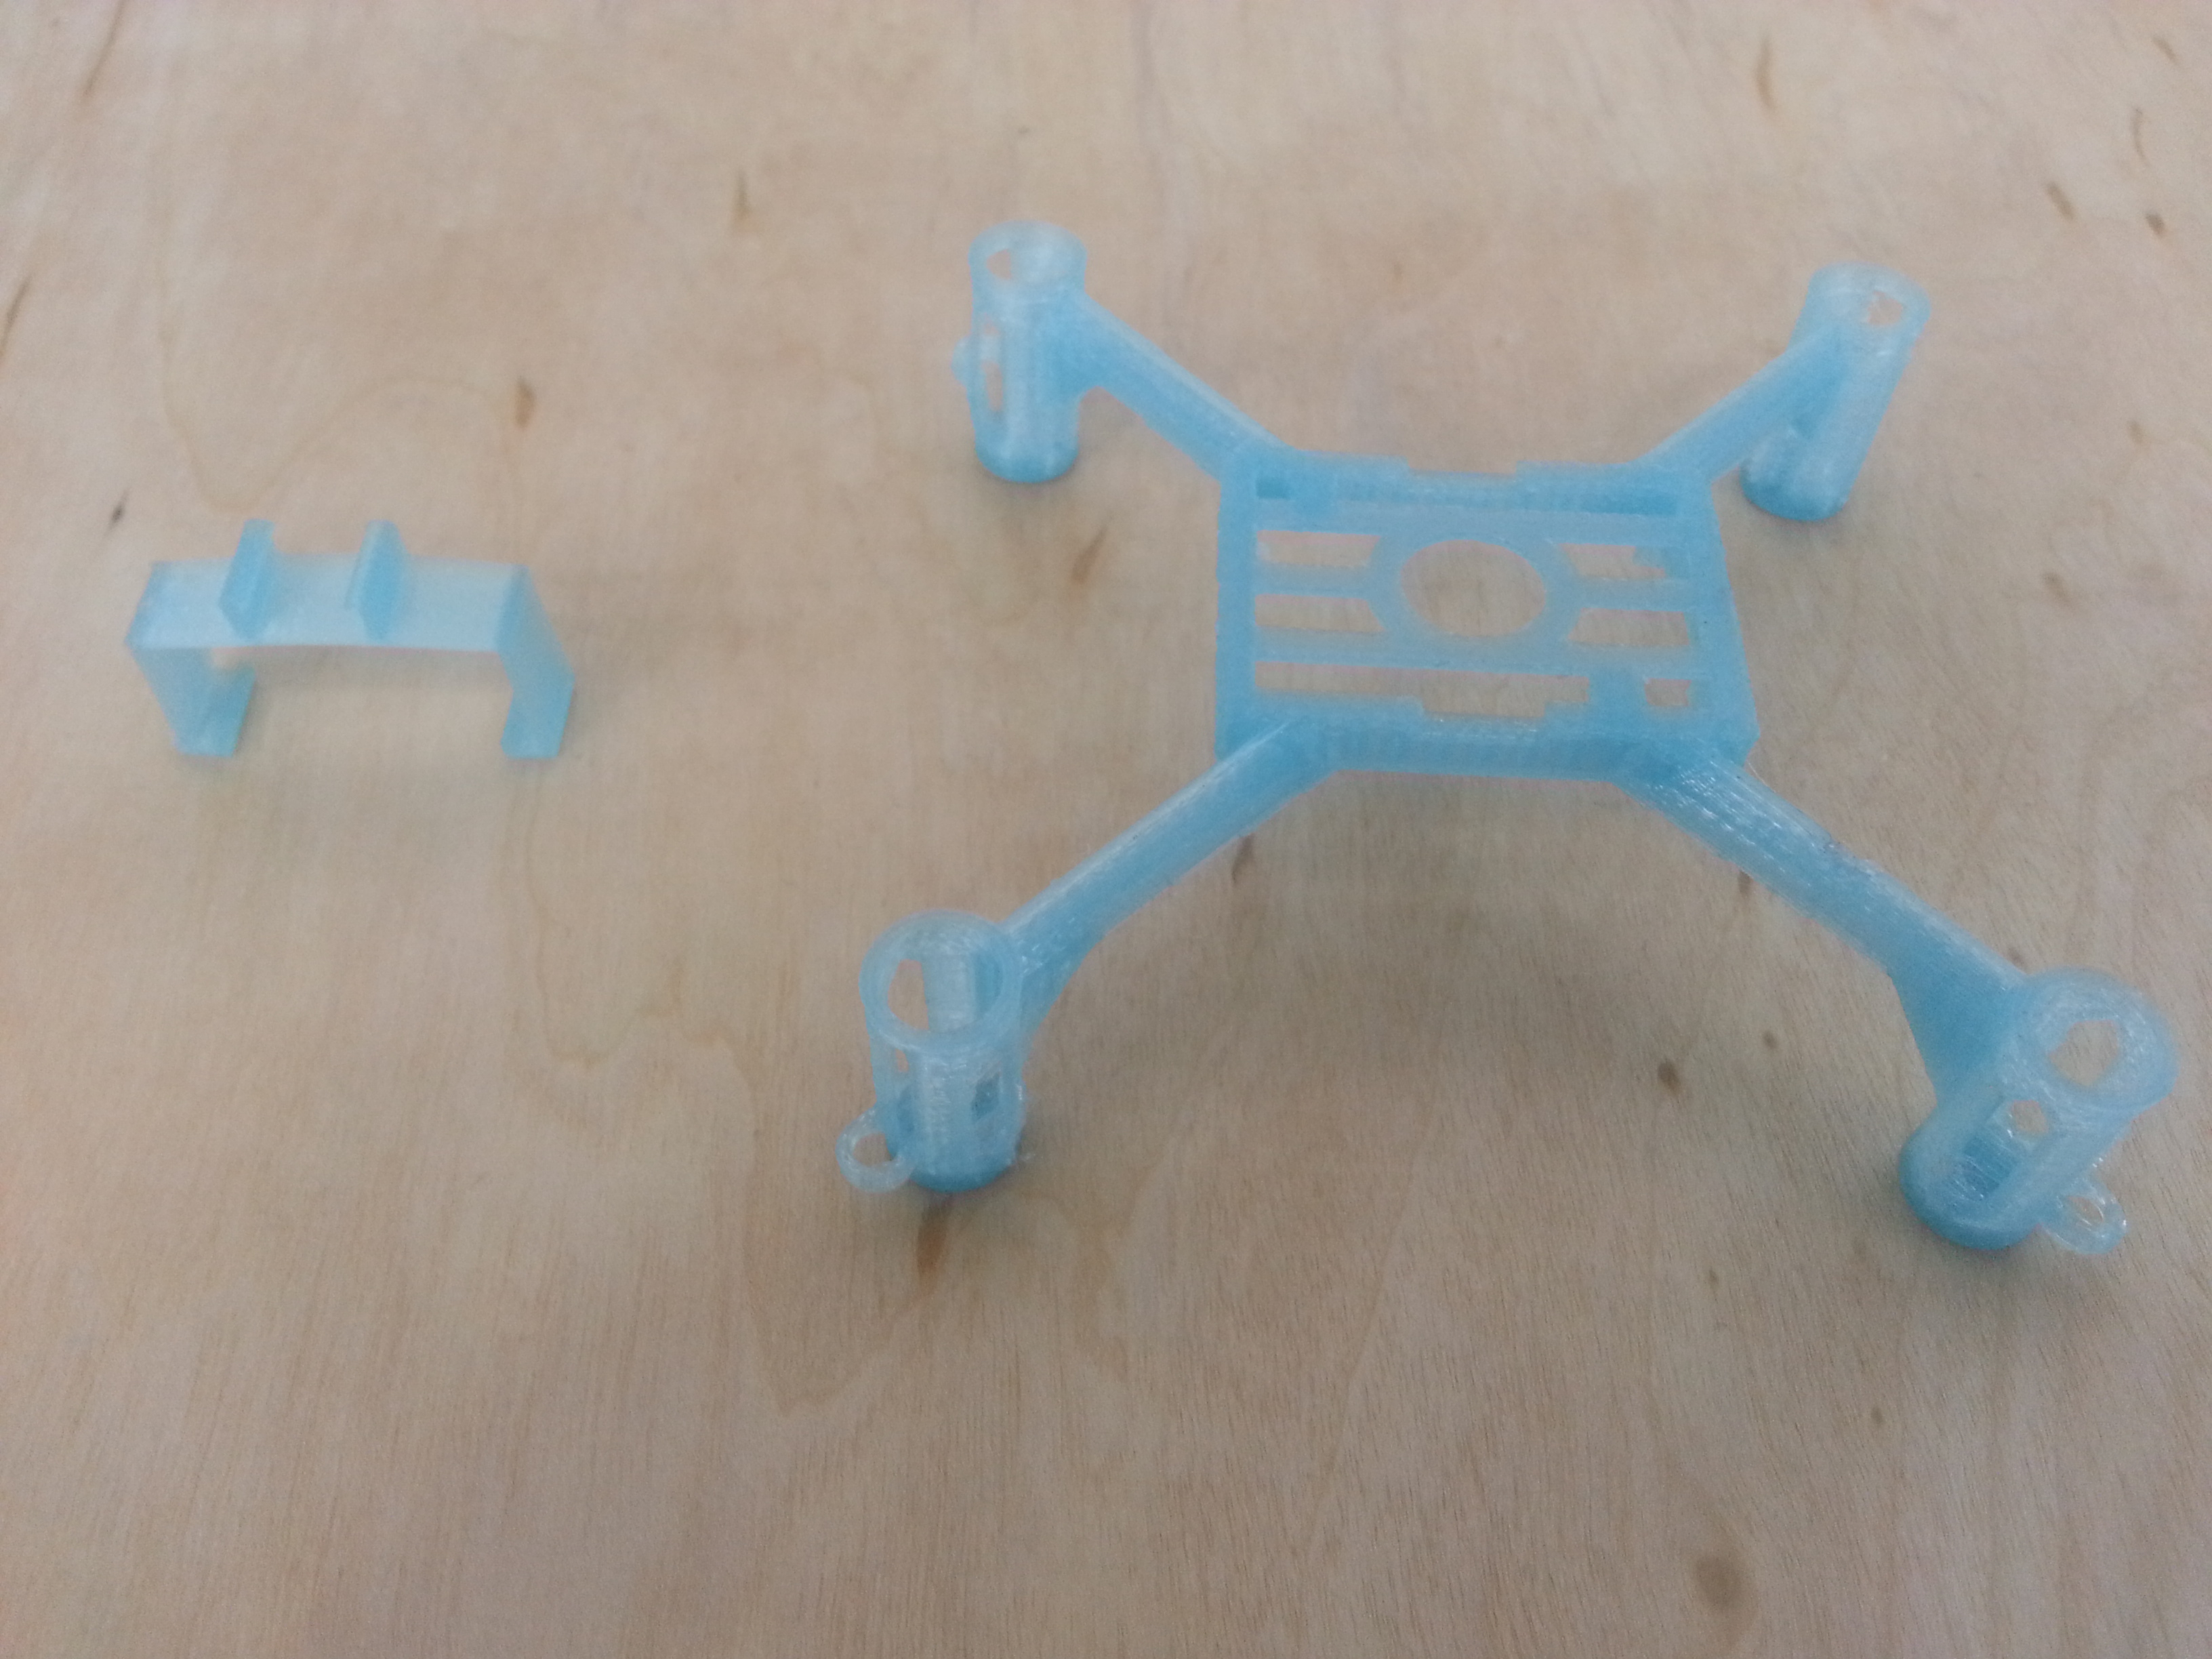 Picture of 3D Printing the Drone Chassis